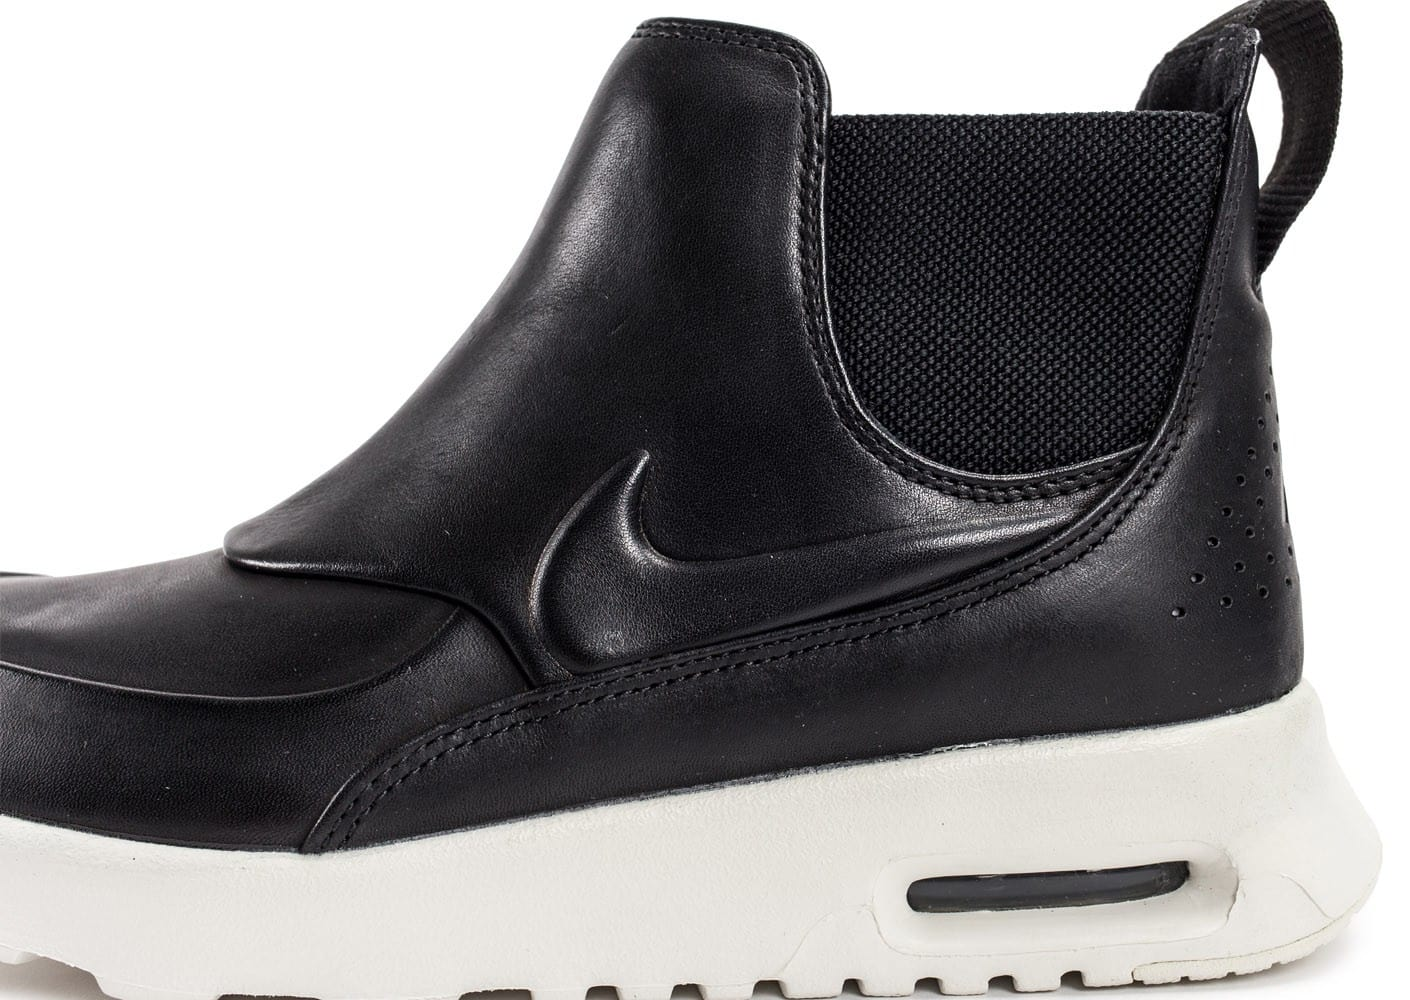 cheap for discount 98039 54334 Chaussures Nike Air Max Thea Mid noire vue dessus .